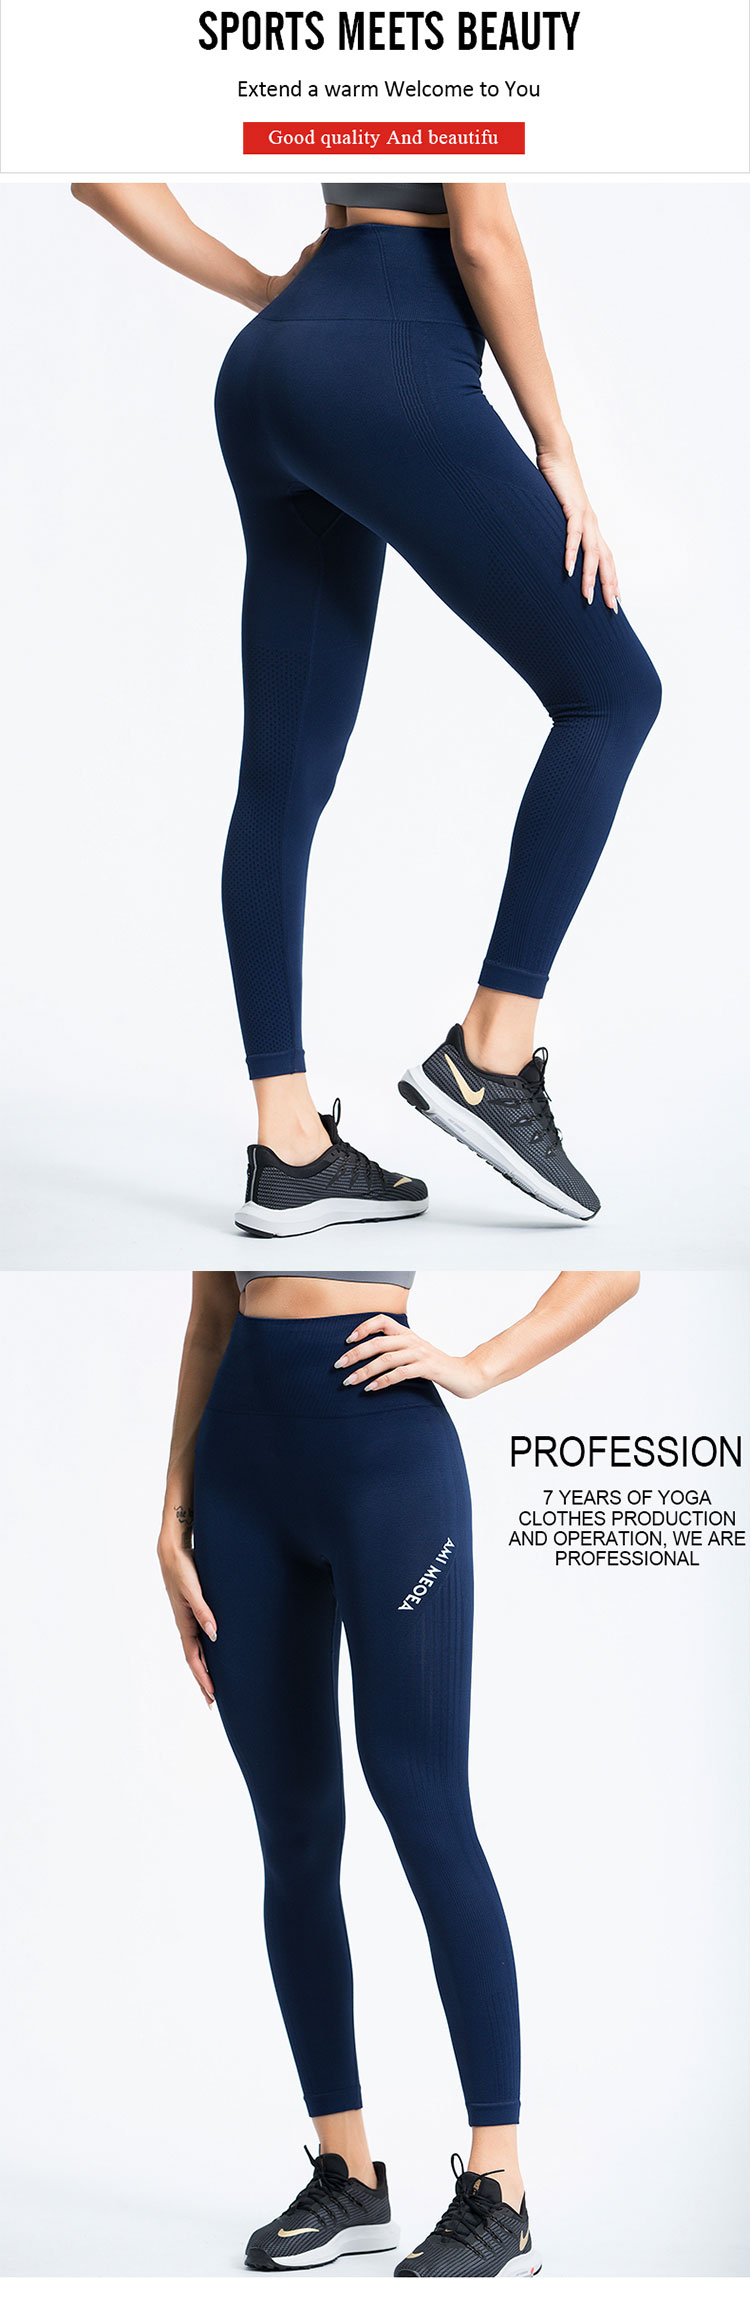 With-the-return-of-Seamless-gym-tights-and-the-continuation-of-luxury-theme